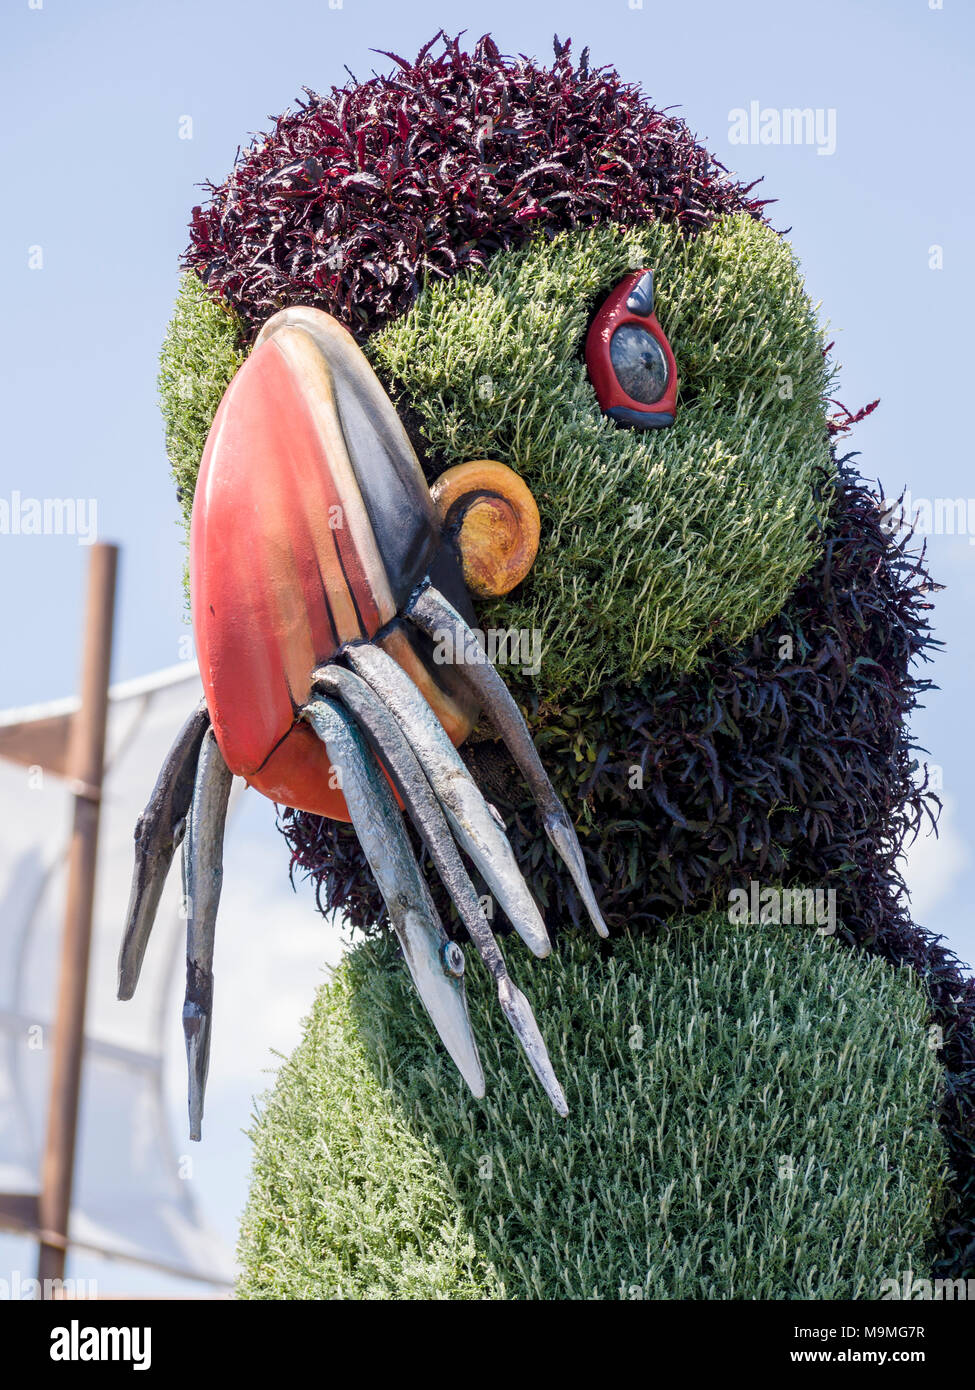 Plant sculpture of a Puffin with a beak full of fish: A huge plant-based sculpture of the a Newfoundland puffin with fish in its mouth at MosaiCanada 150. - Stock Image